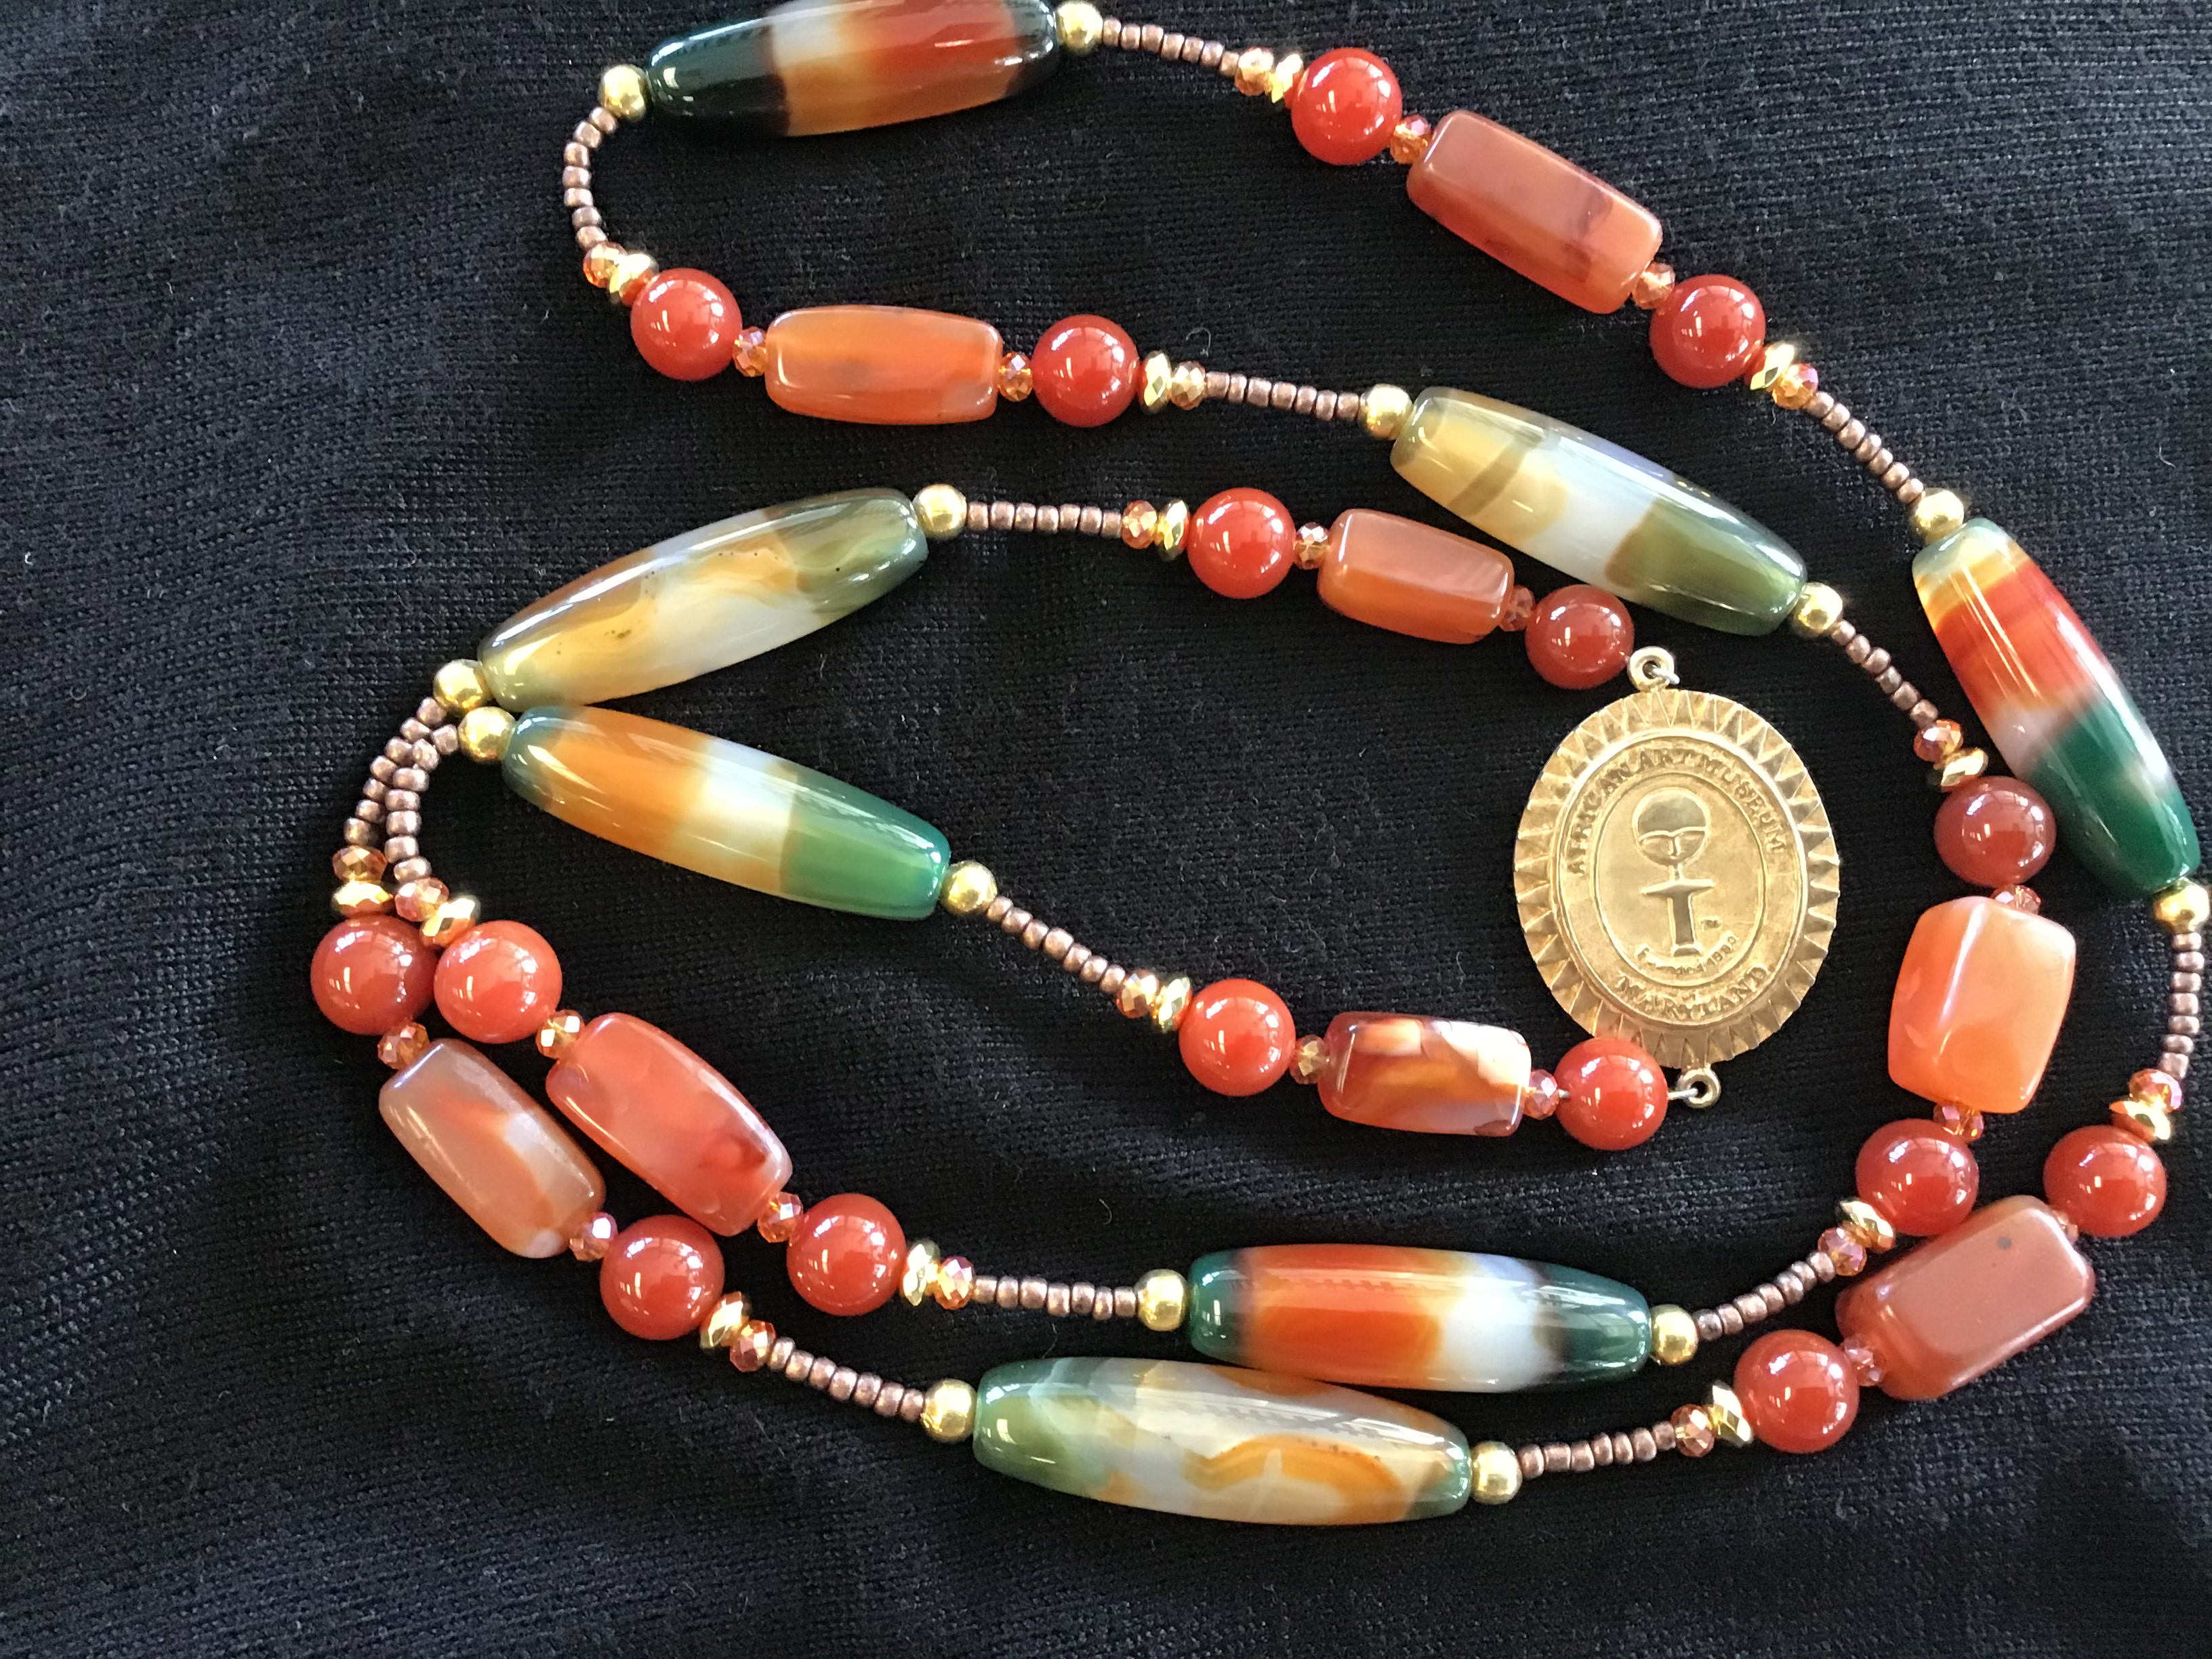 The Gambia necklace